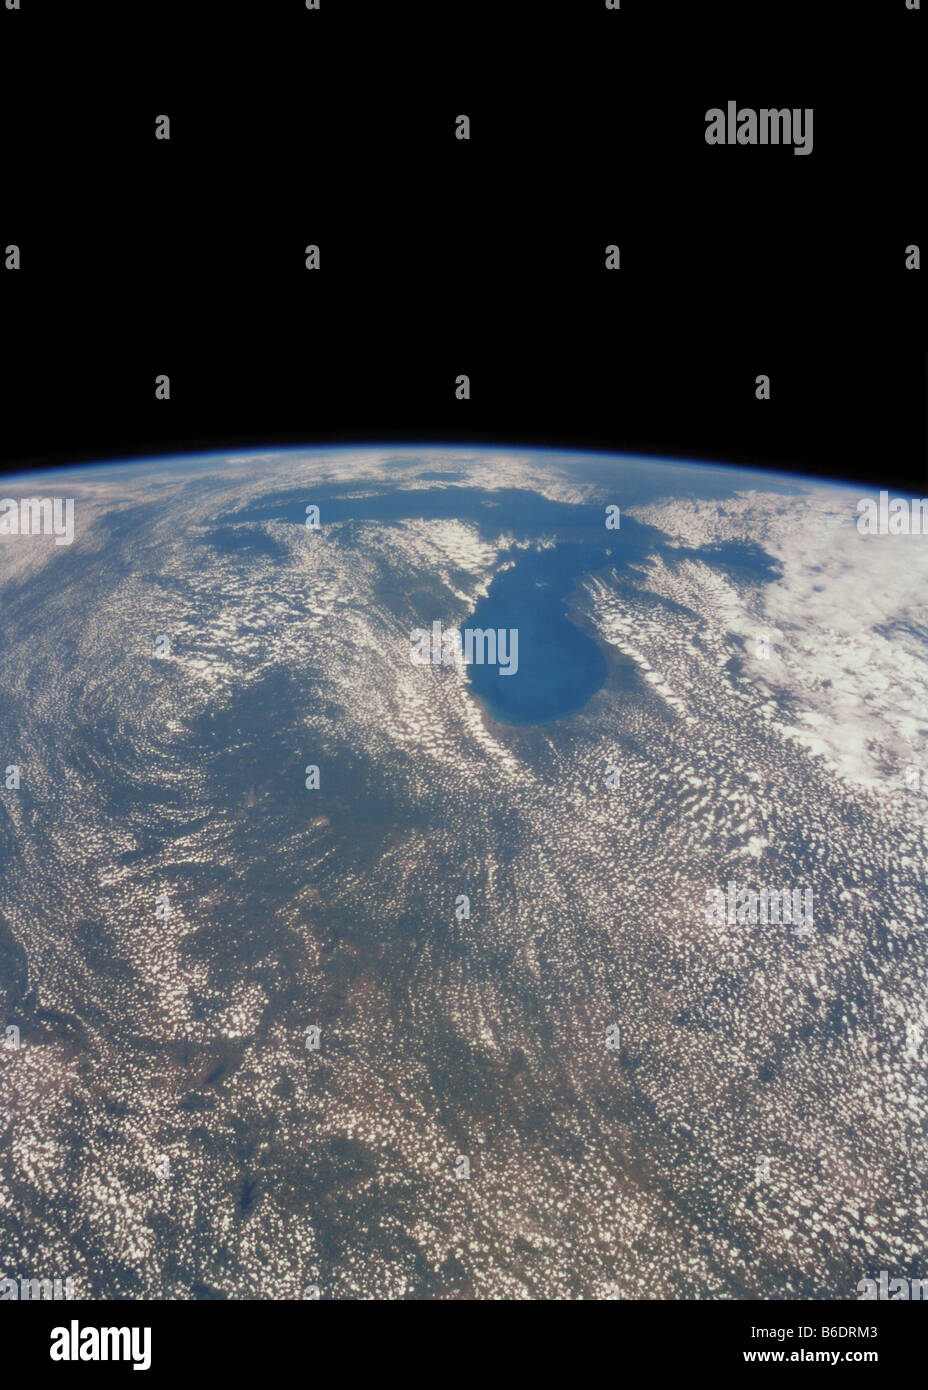 Great Lakes on the USA/Canada border, seen from space. The Great Lakes cover an area of almost 250,000 square kilometres. - Stock Image